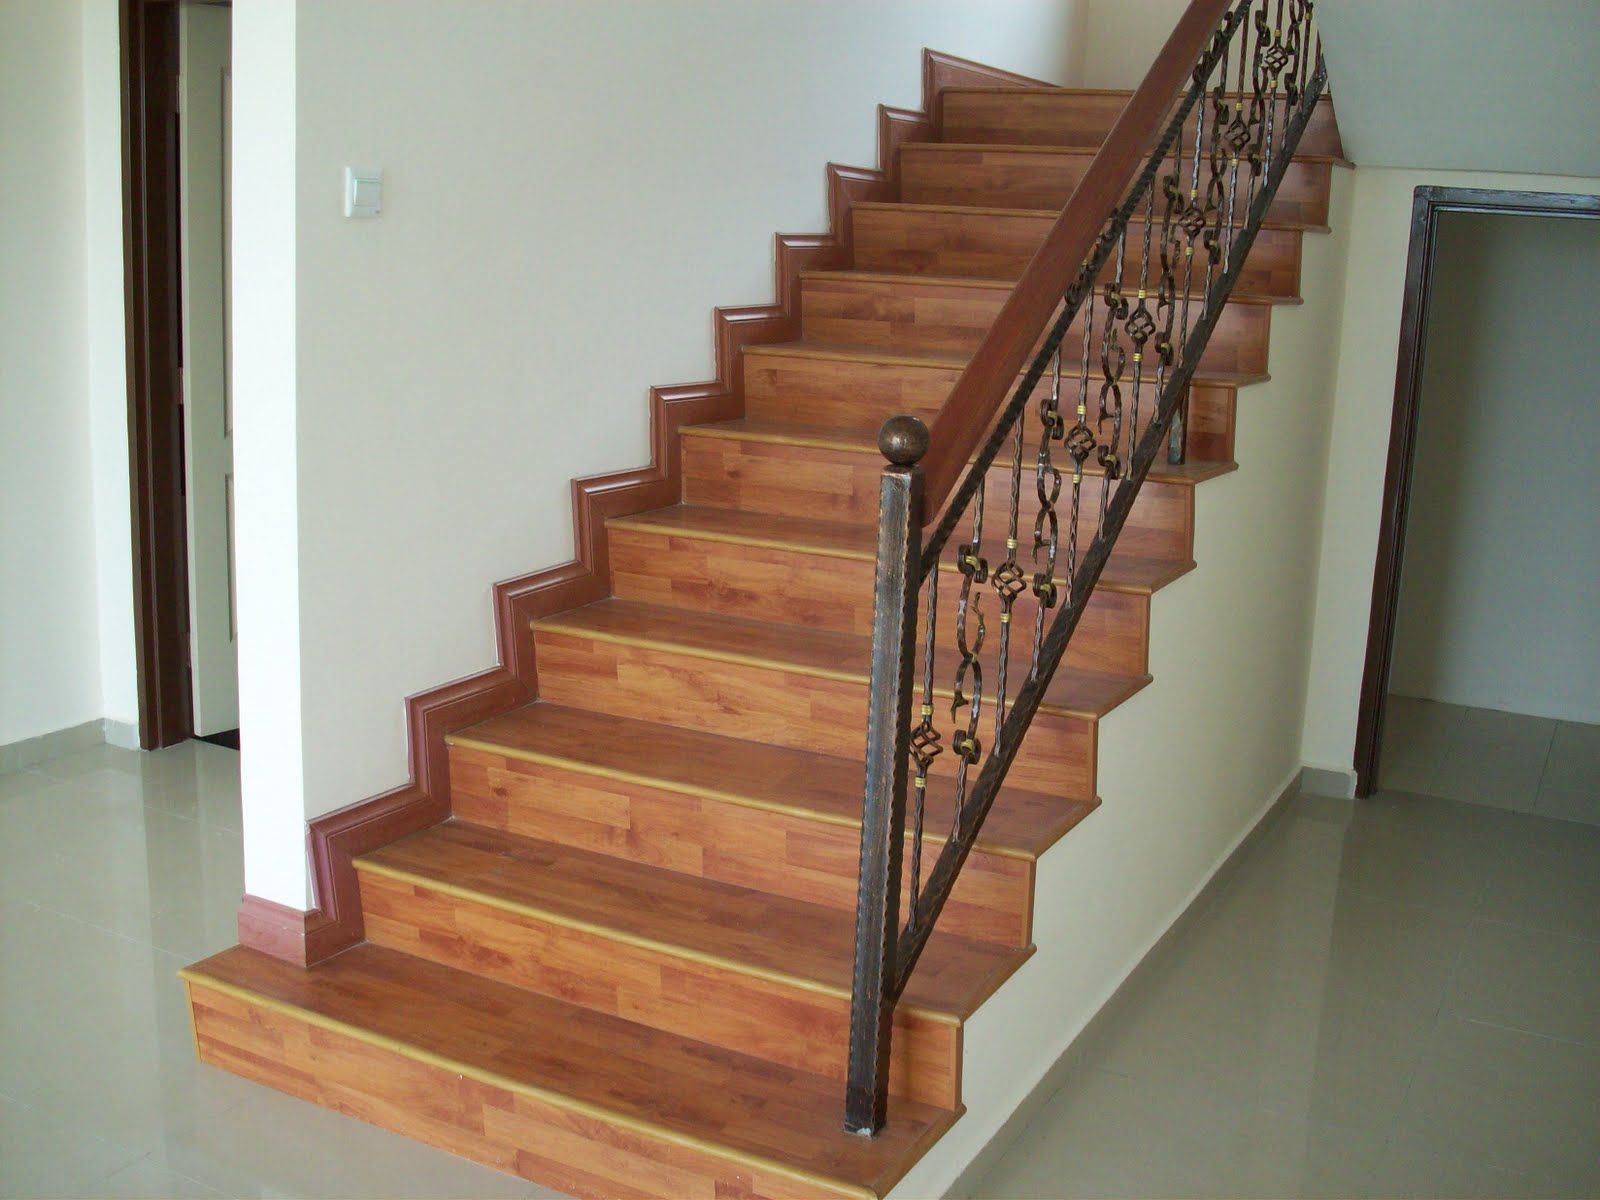 Laminate Flooring For Stairs installing laminate flooring on stairs laminate stair treads stair profile Attractive How To Install Laminate Flooring On Stairs Ideas Created For Indoor Staircase With Hardwood Laminate Flooring And Metal Wood Railingjpg